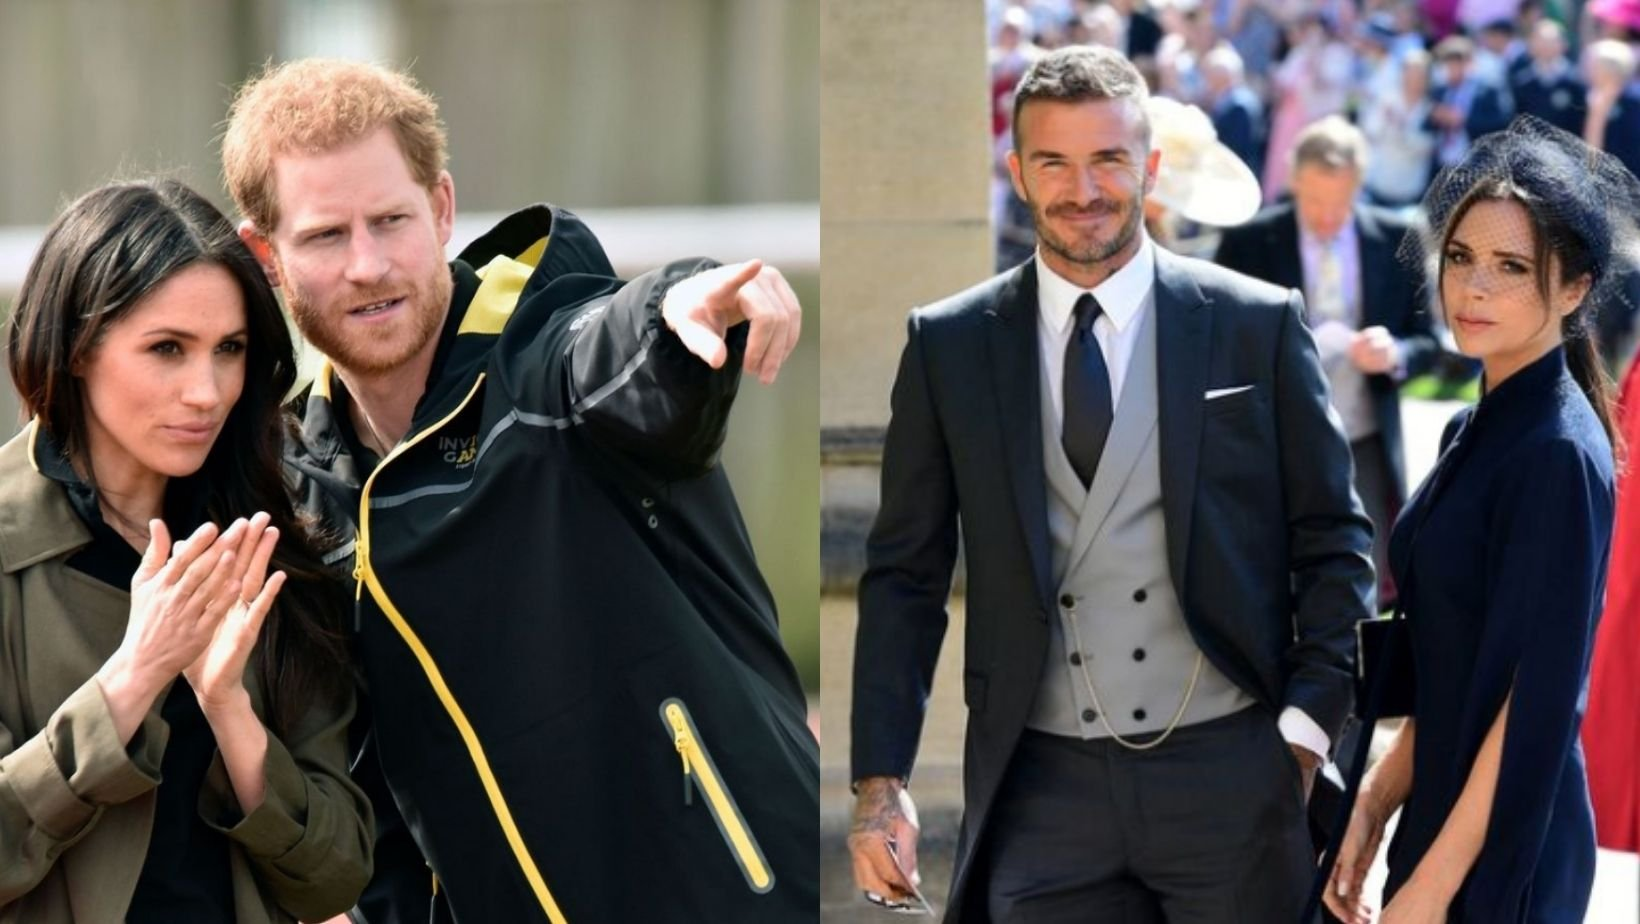 1 138.jpg?resize=1200,630 - Prince Harry's Exchange With David Beckham Over Meghan & Victoria's 'Dispute' Has Been Revealed